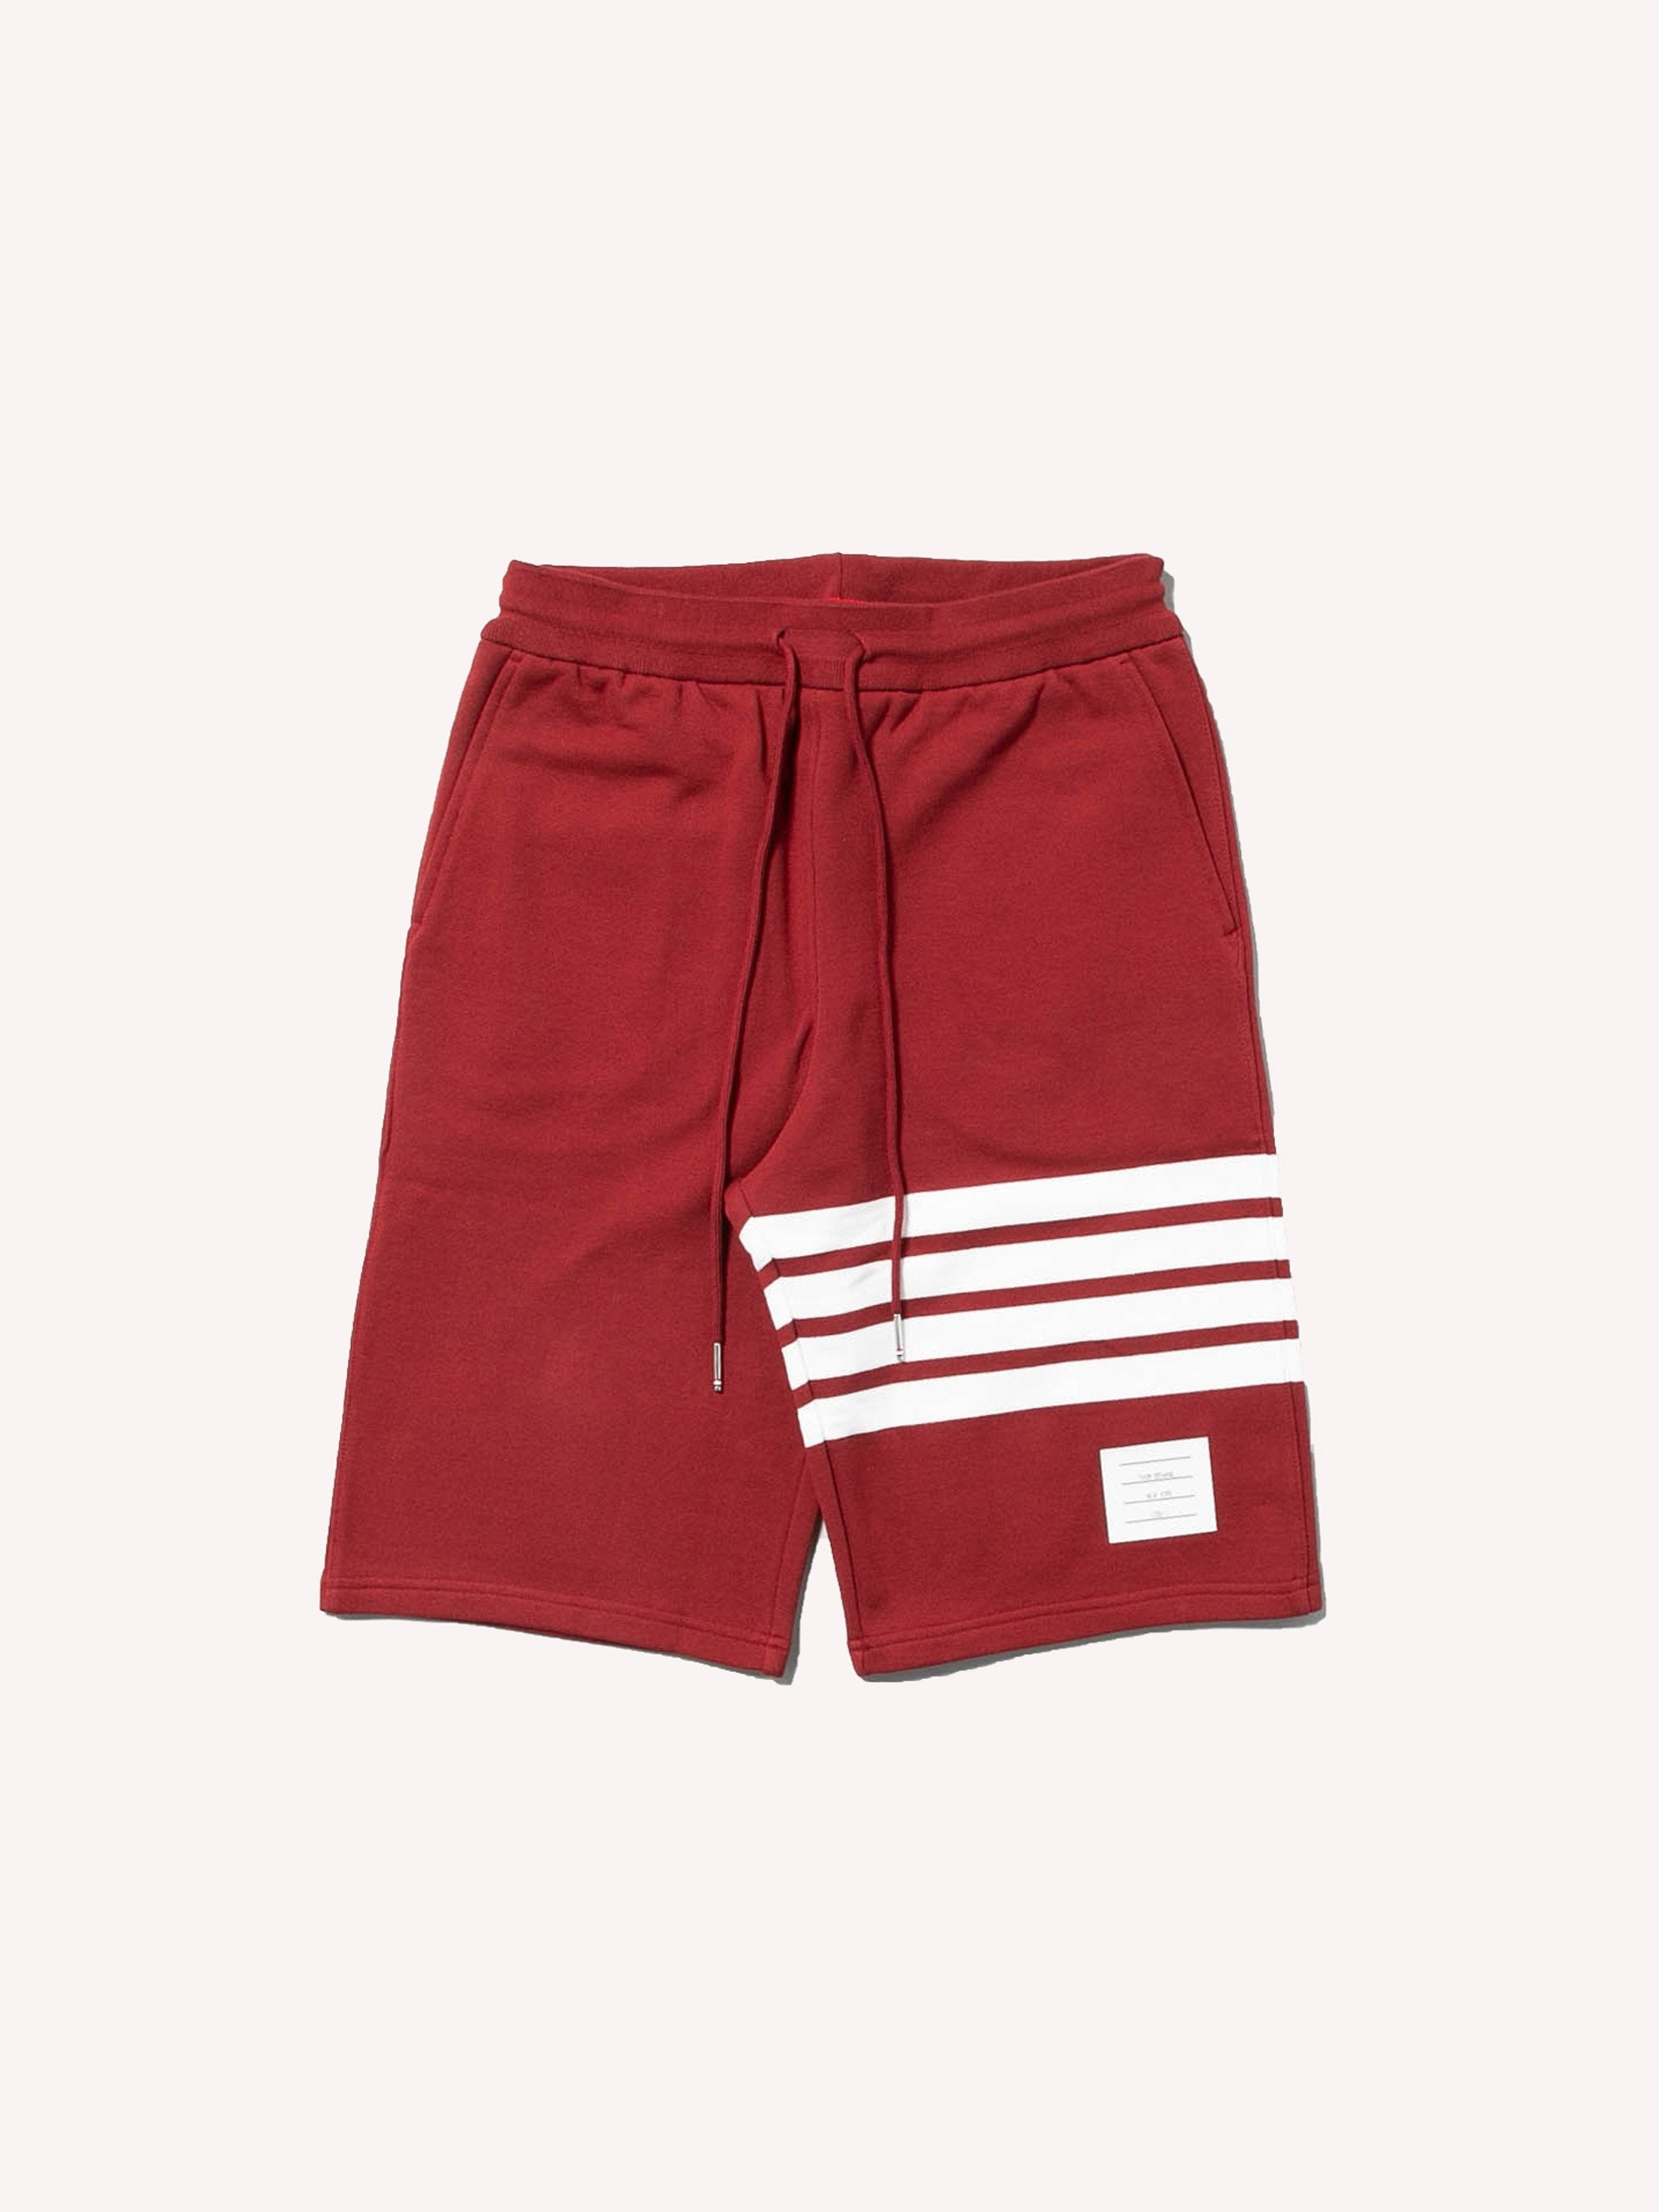 Med Red Classic Sweat Shorts With Engineered 4 Bar Stripes 1